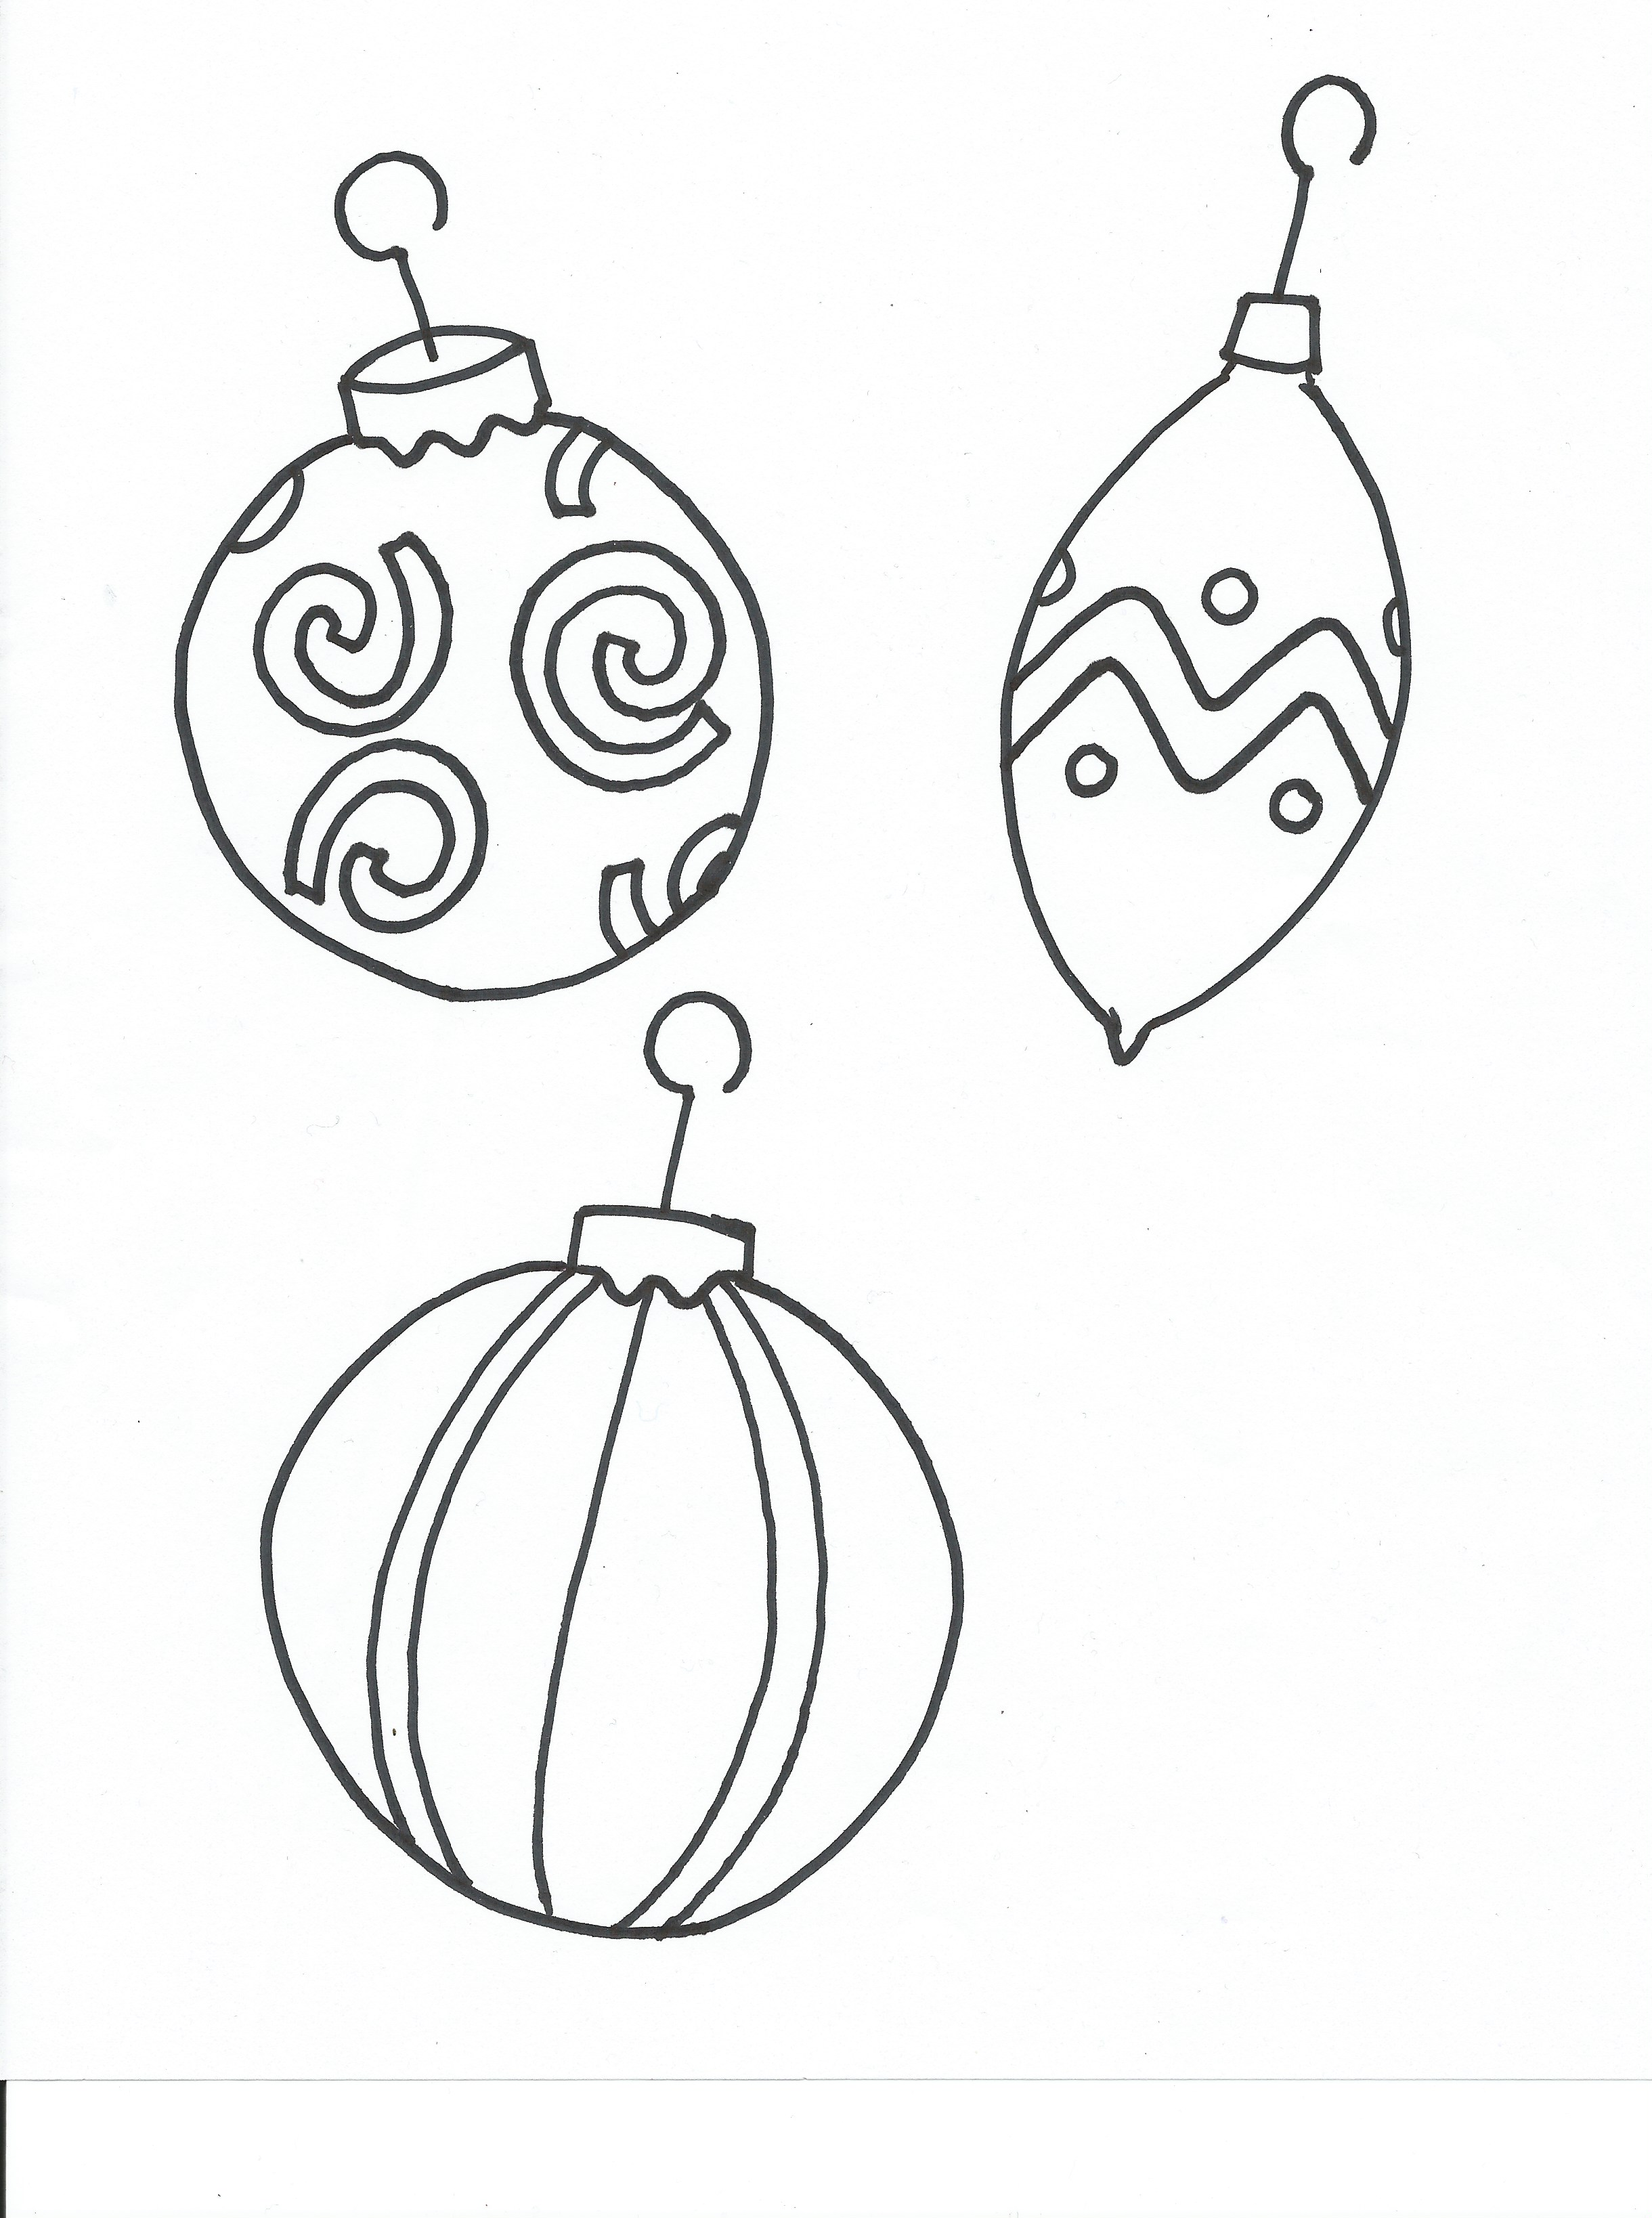 Christmas Decorations Coloring Pages New Calendar Coloring Pages Ornaments Printable